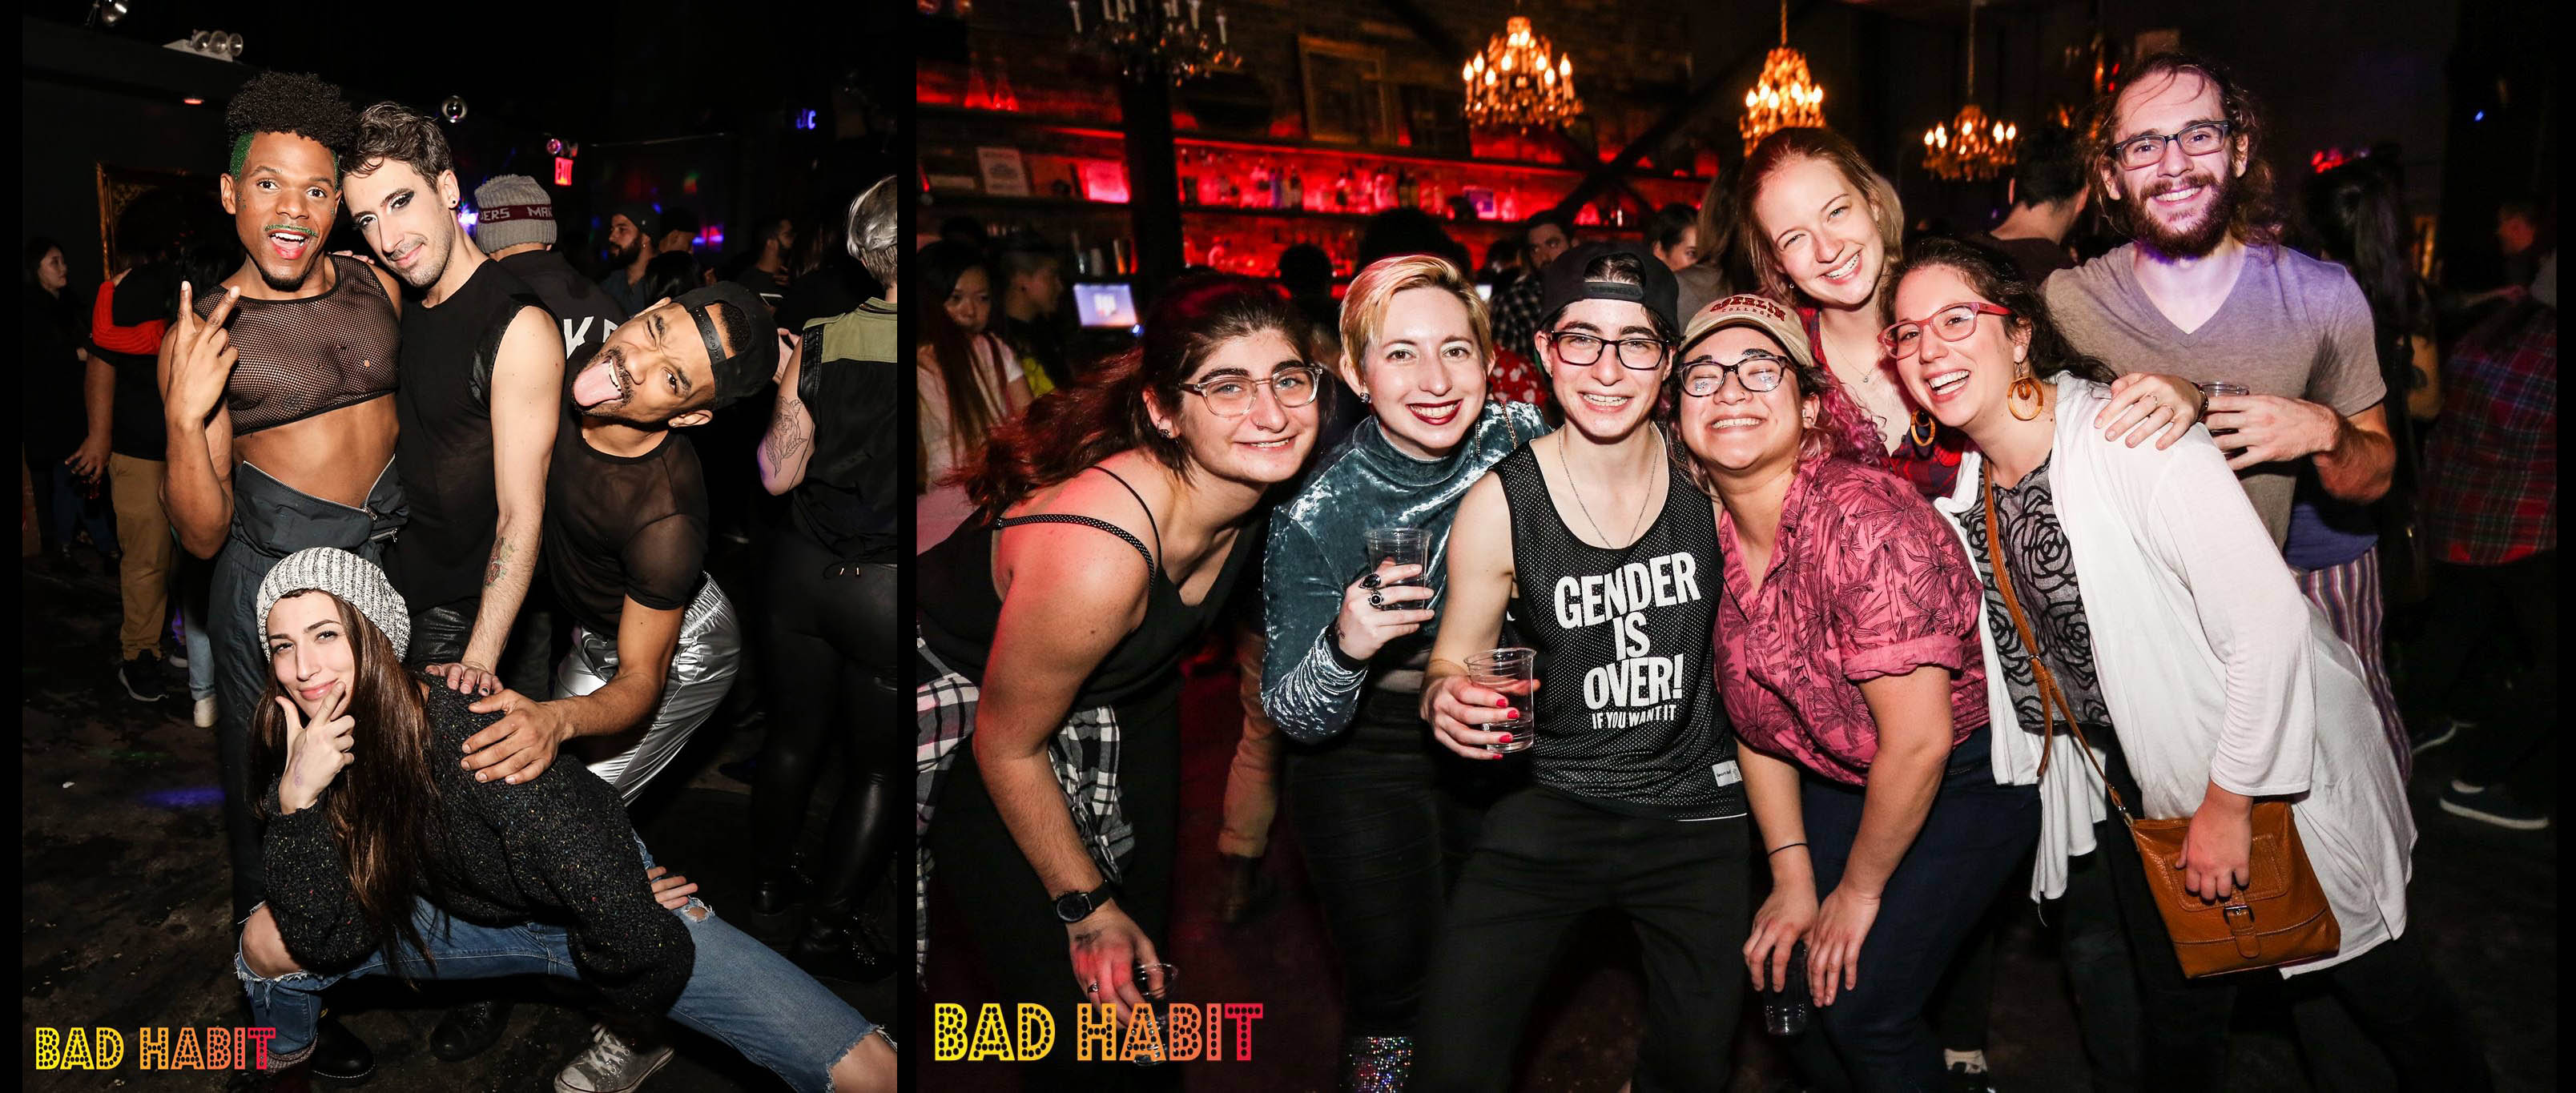 Bad Habit Queer Dance Party